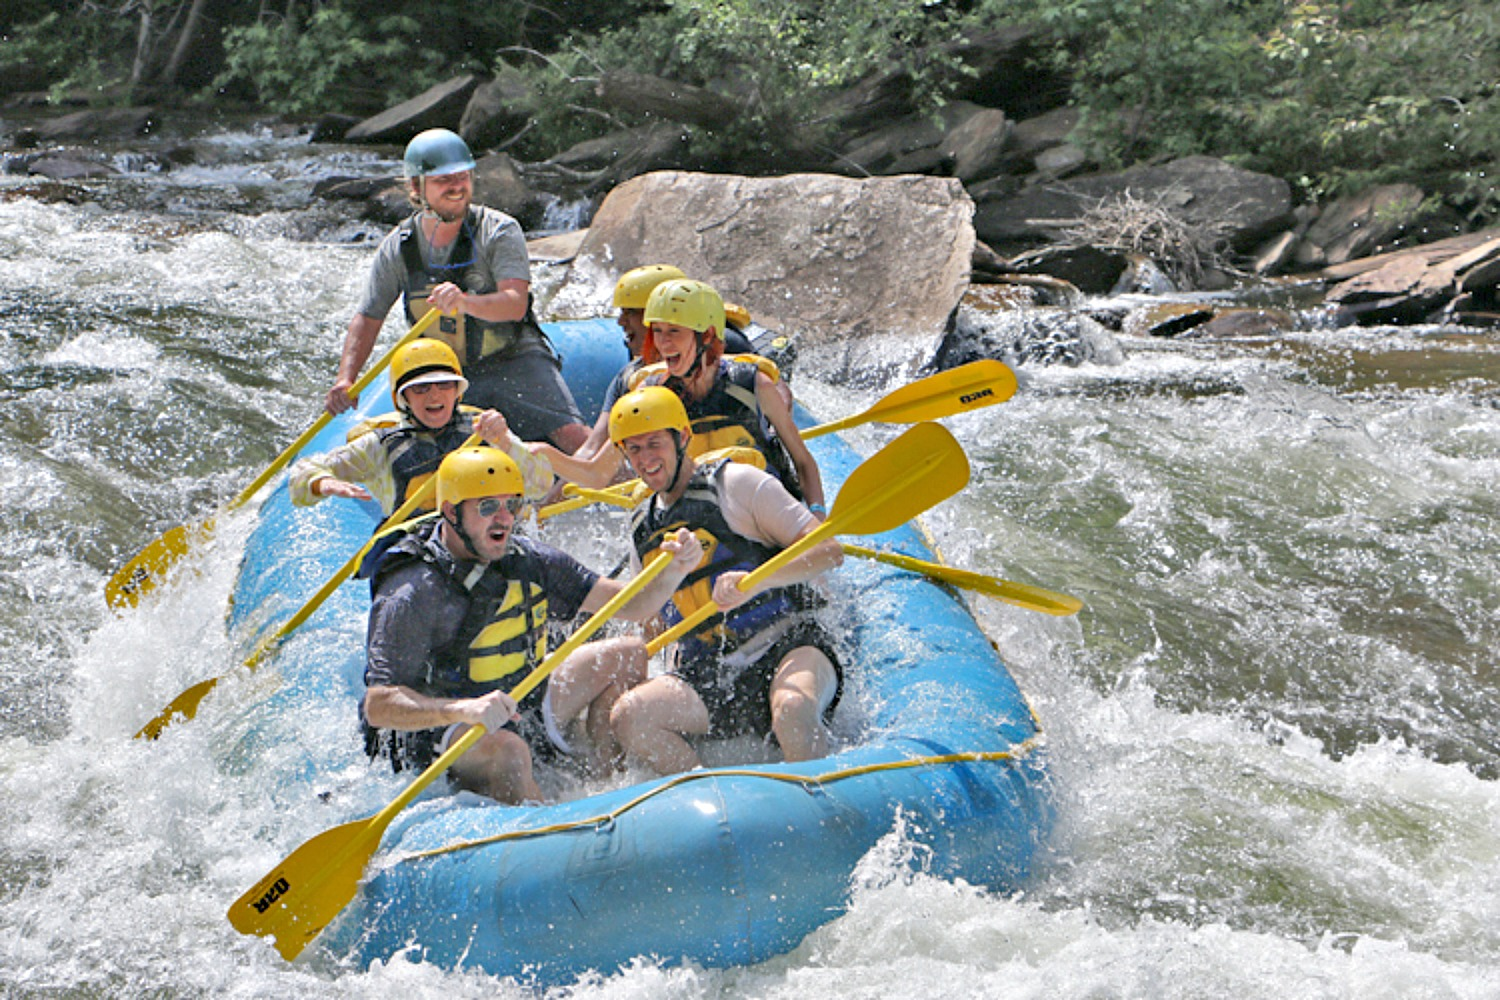 Benefits of traveling. Playtime - Chattanooga white water rafting.